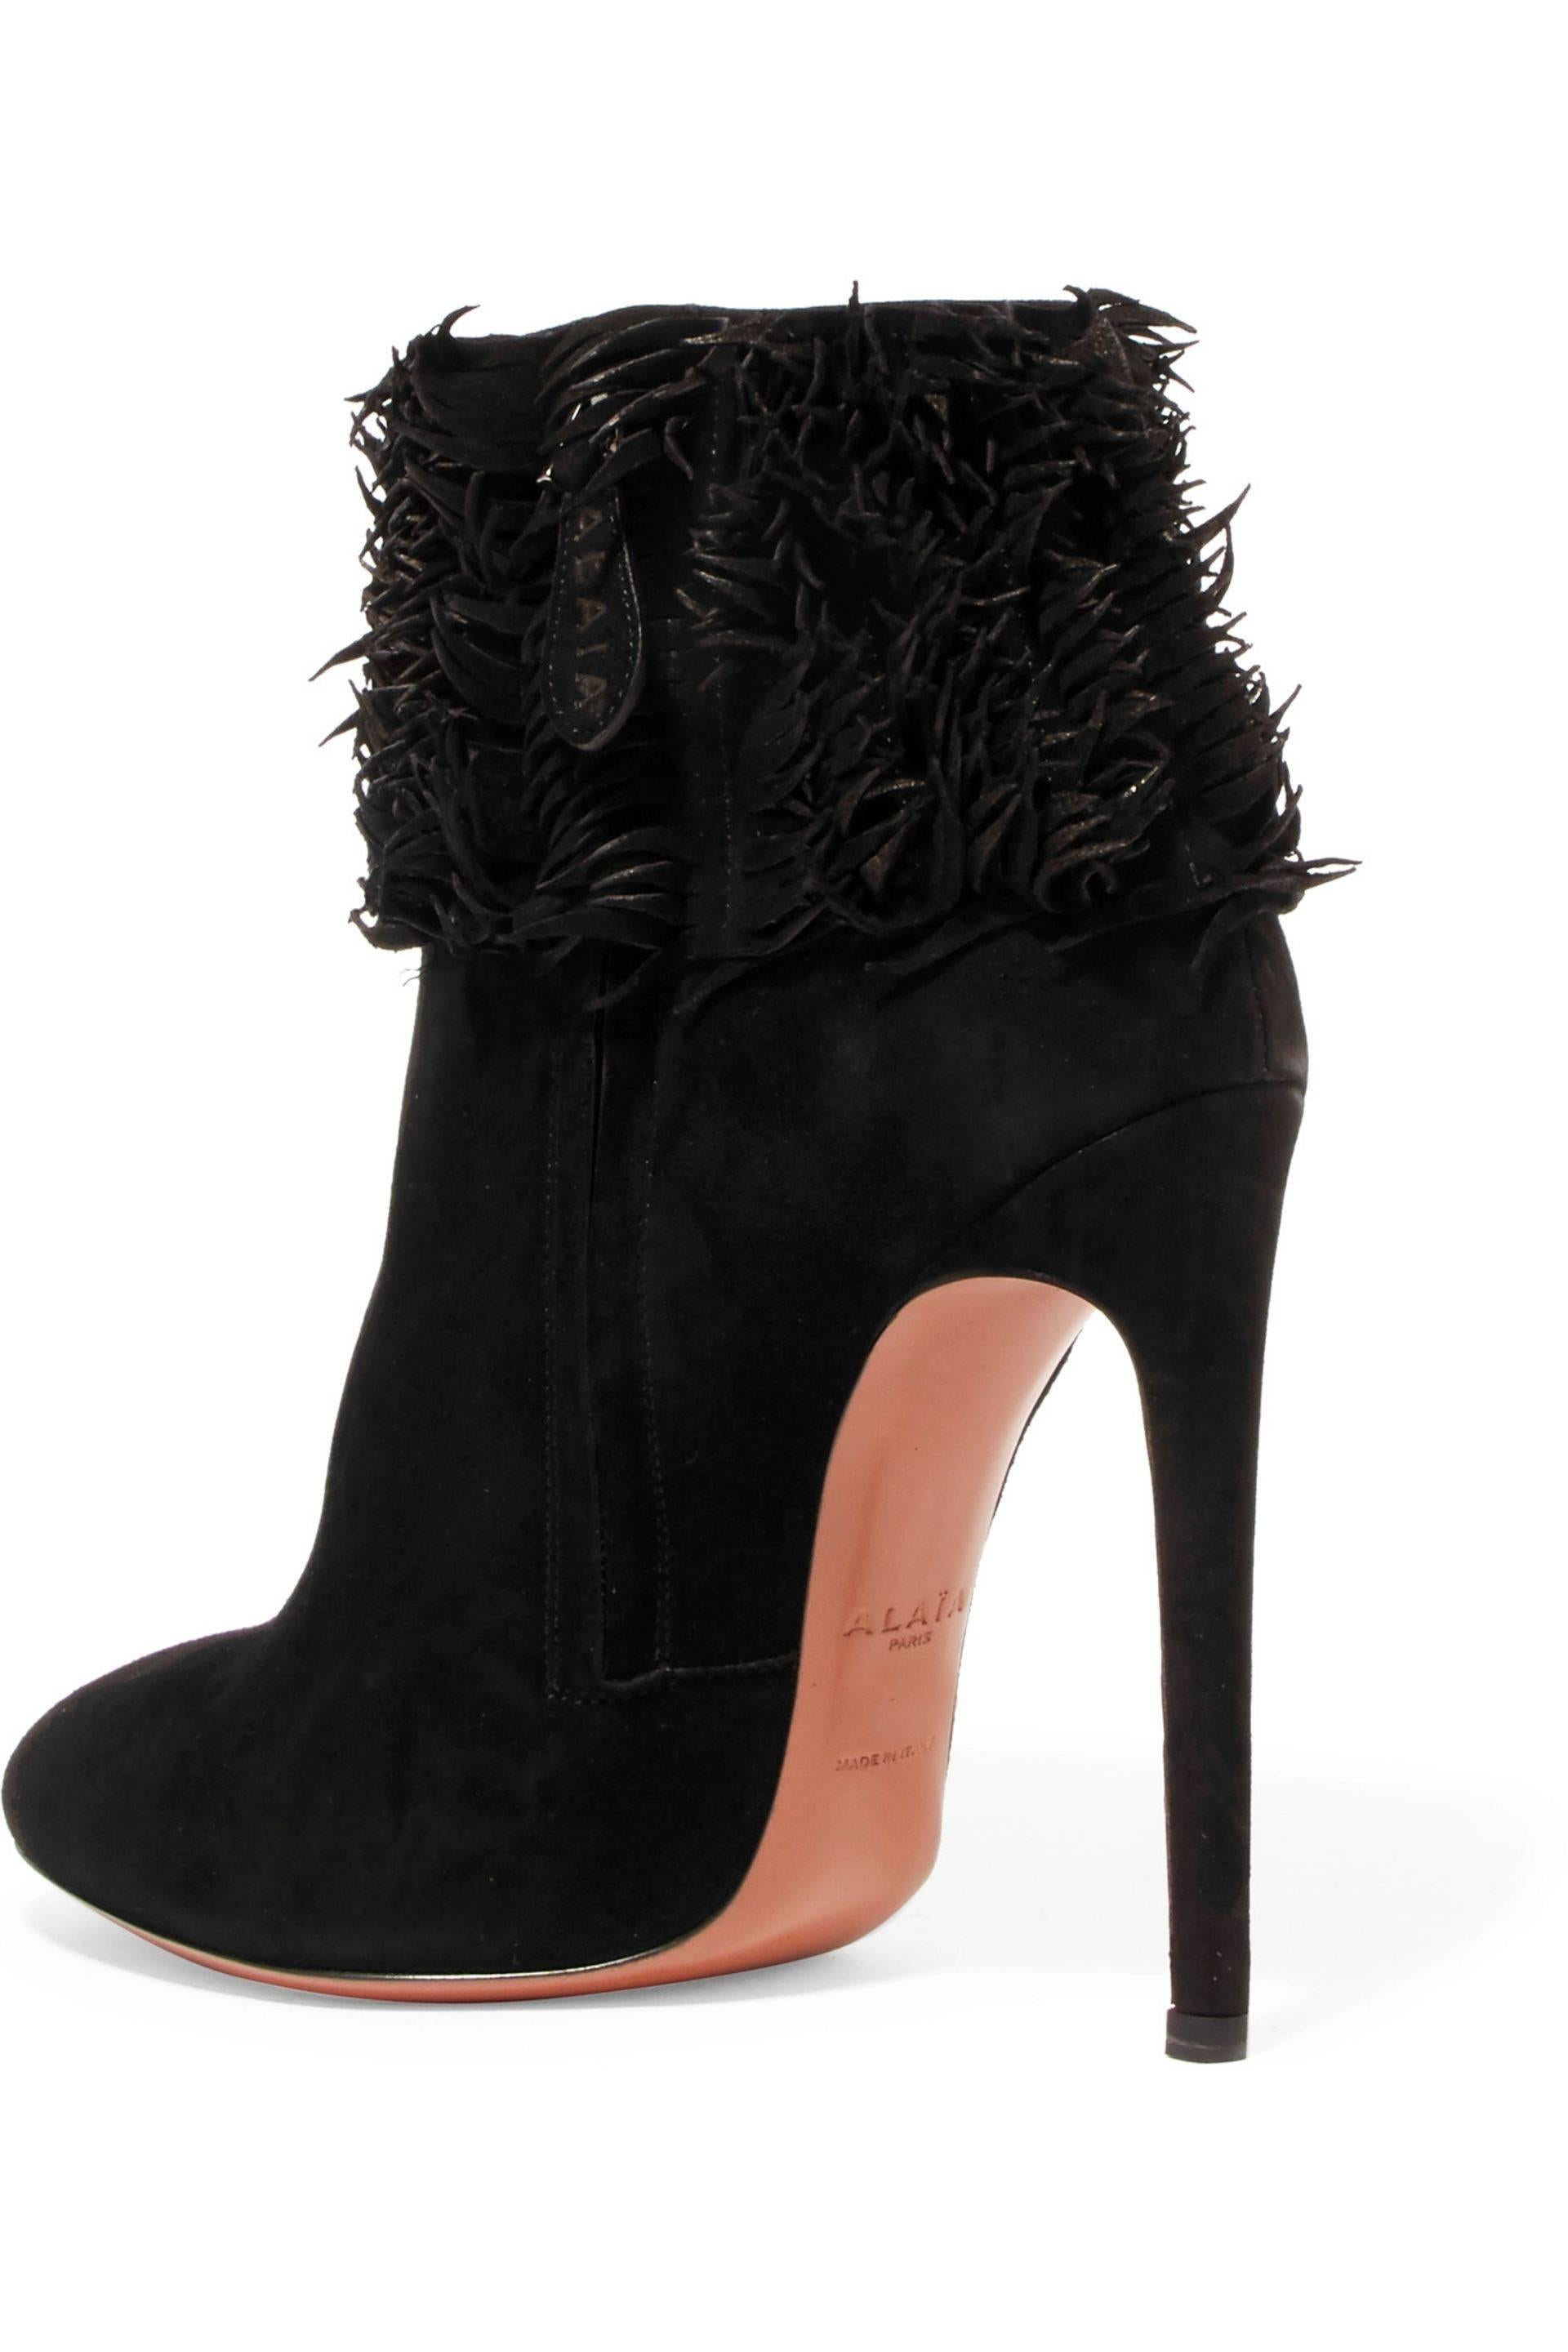 visit new cheap online cheap big discount Alaïa Ruffle Suede Booties high quality buy online sale order cheap sale looking for 0SnW2V